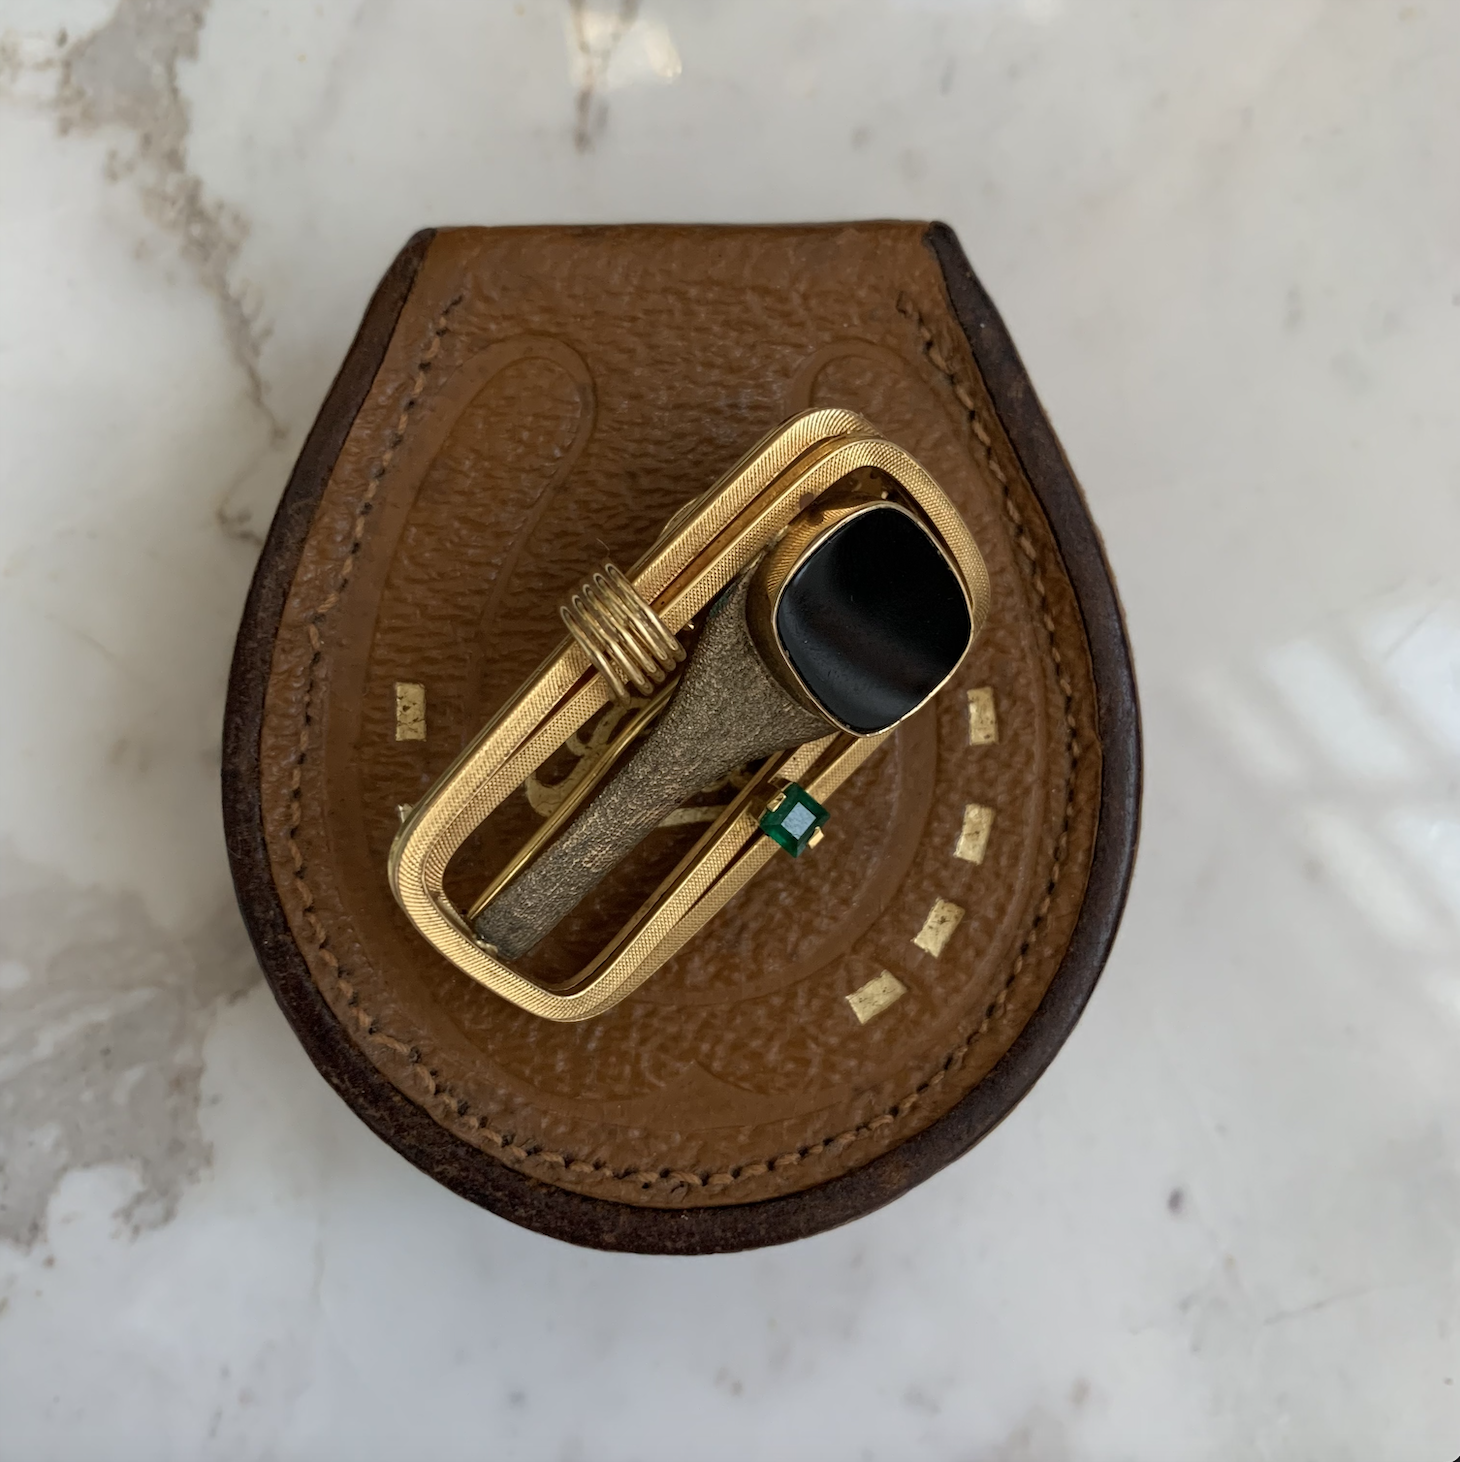 Gold signet ring with onyx brooch.